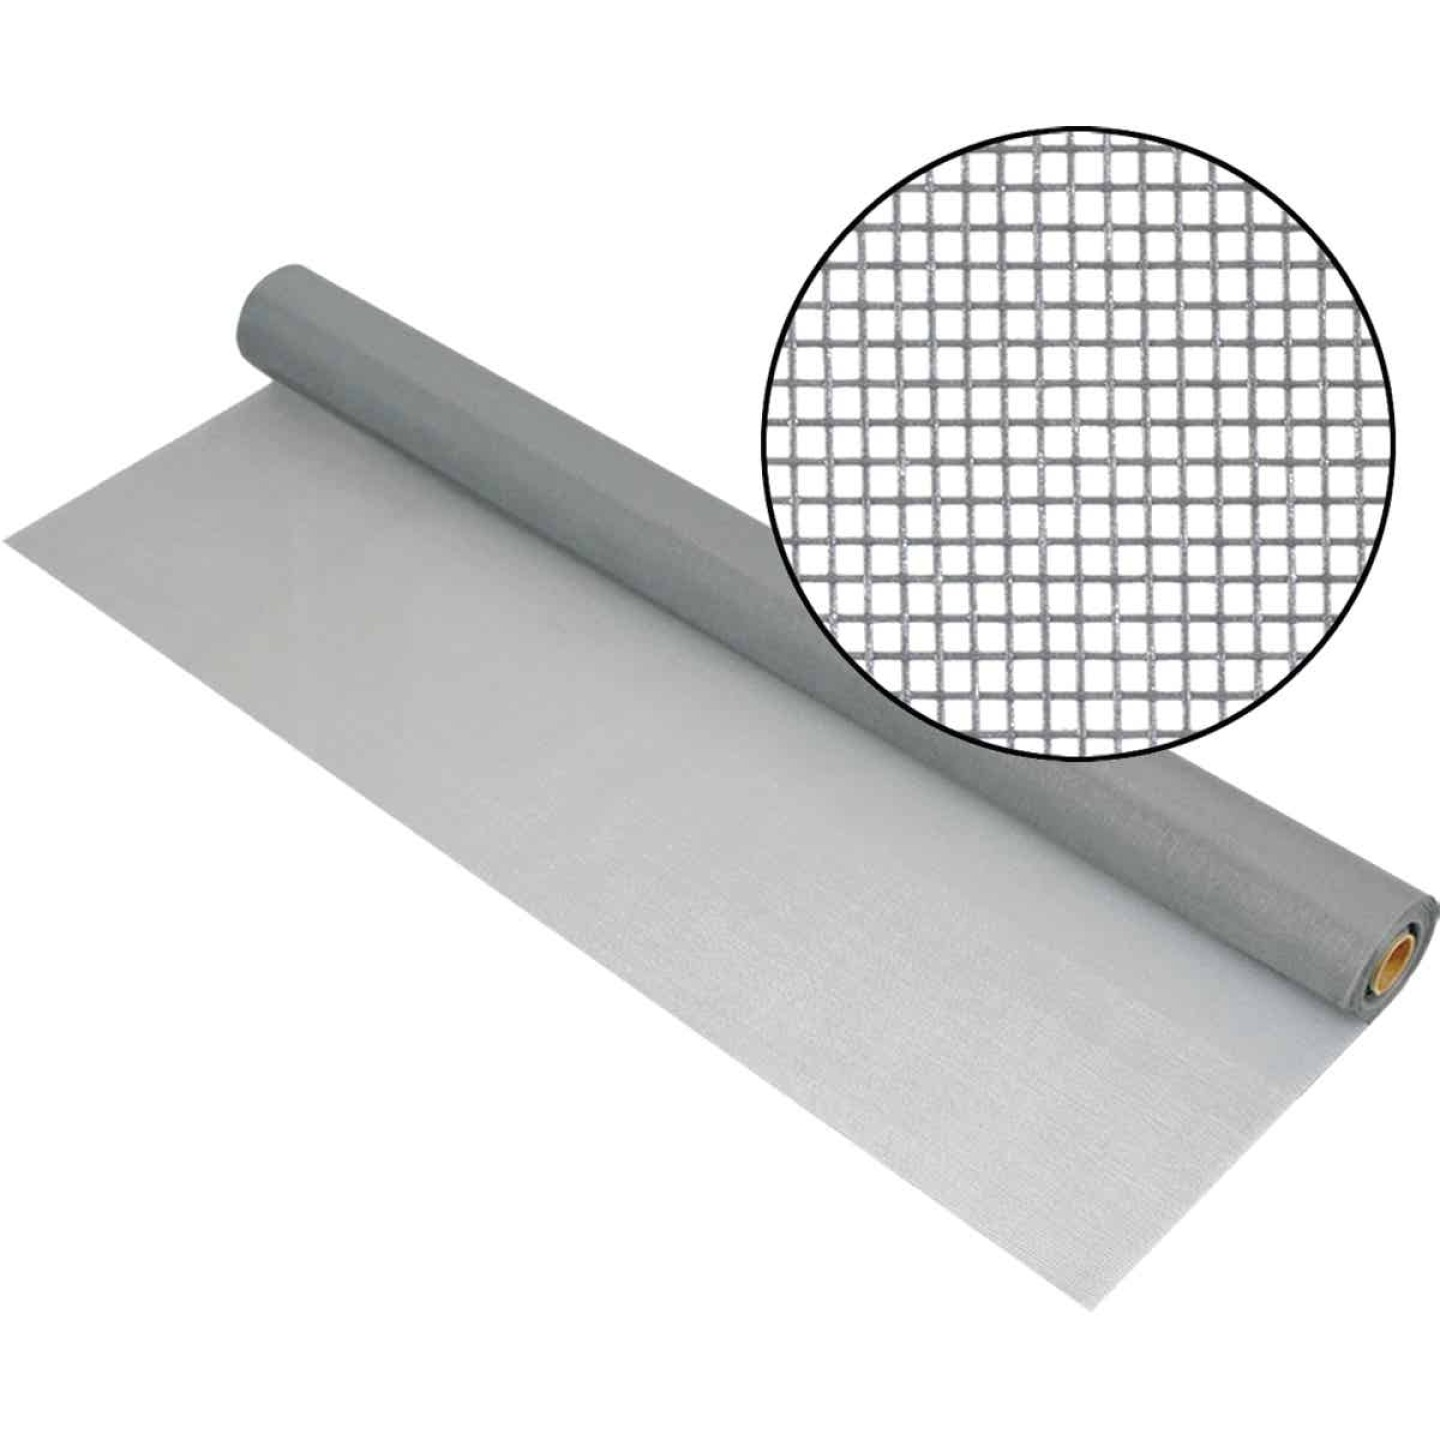 Phifer 36 In. x 100 Ft. Gray Fiberglass Mesh Screen Cloth Image 1